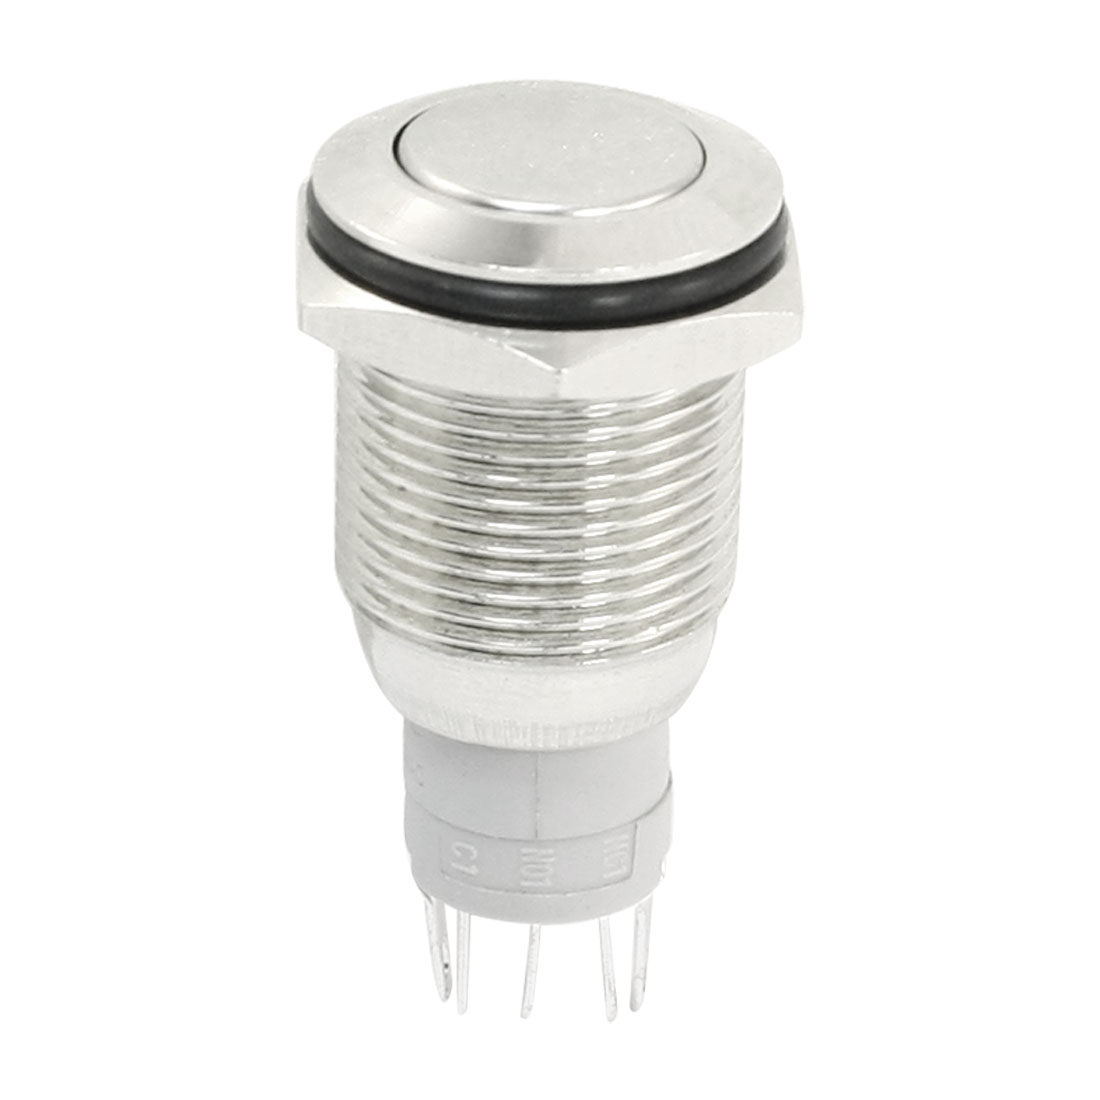 Silver Tone Stainless Steel SPDT Latching Push Button Switch AC250V 3A